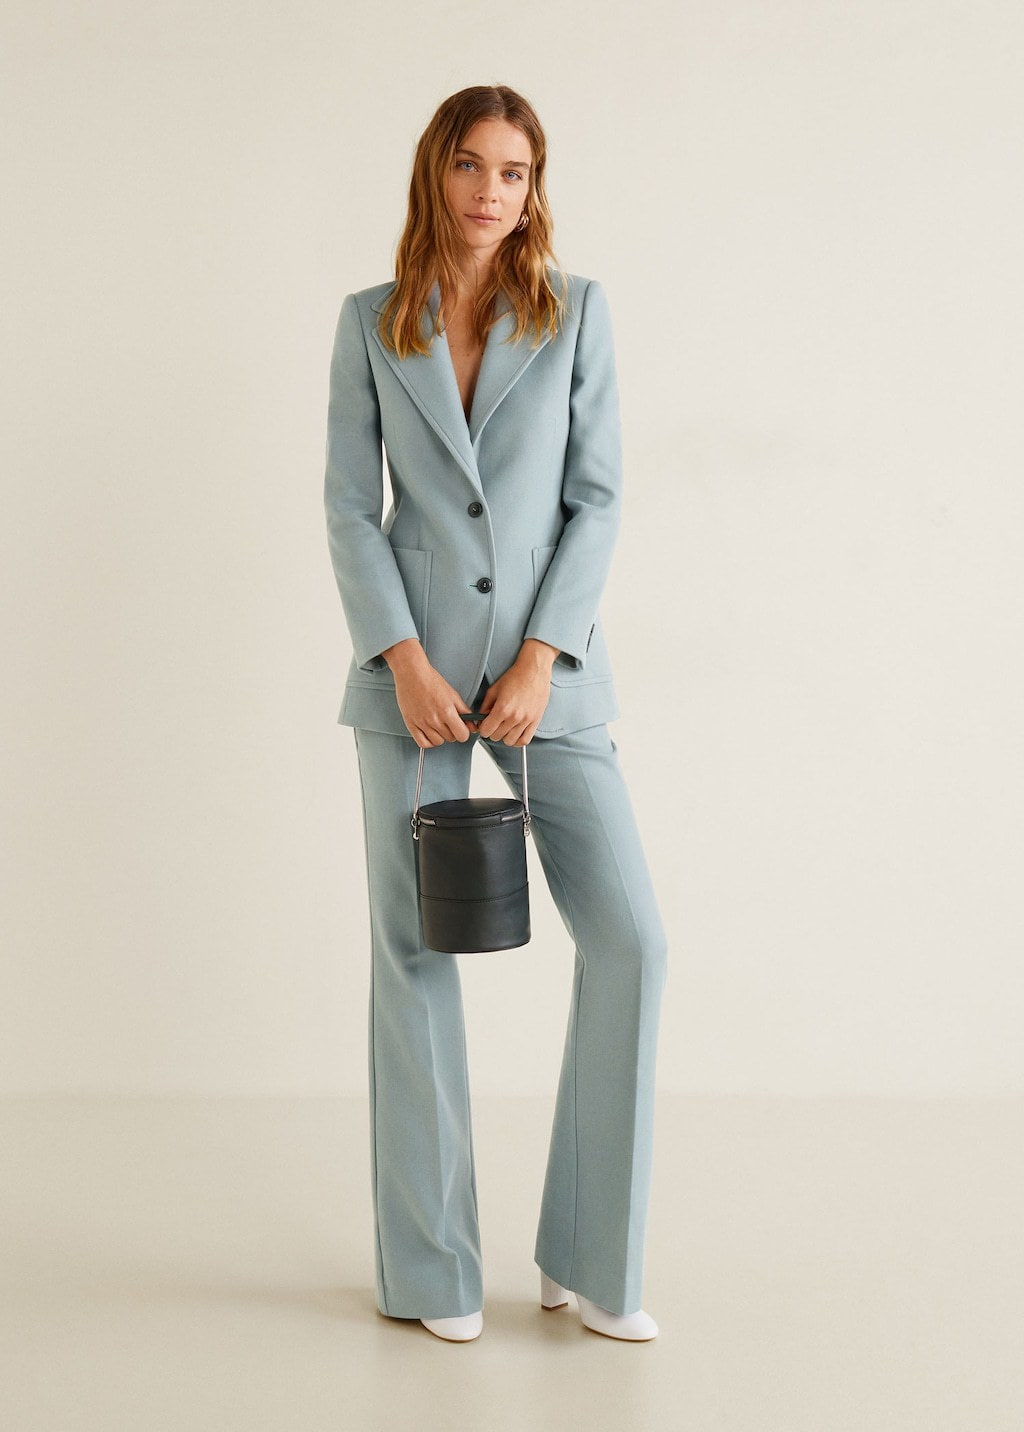 The Fashion Girl S Guide To Wearing Suits Outside Of Work College Fashion